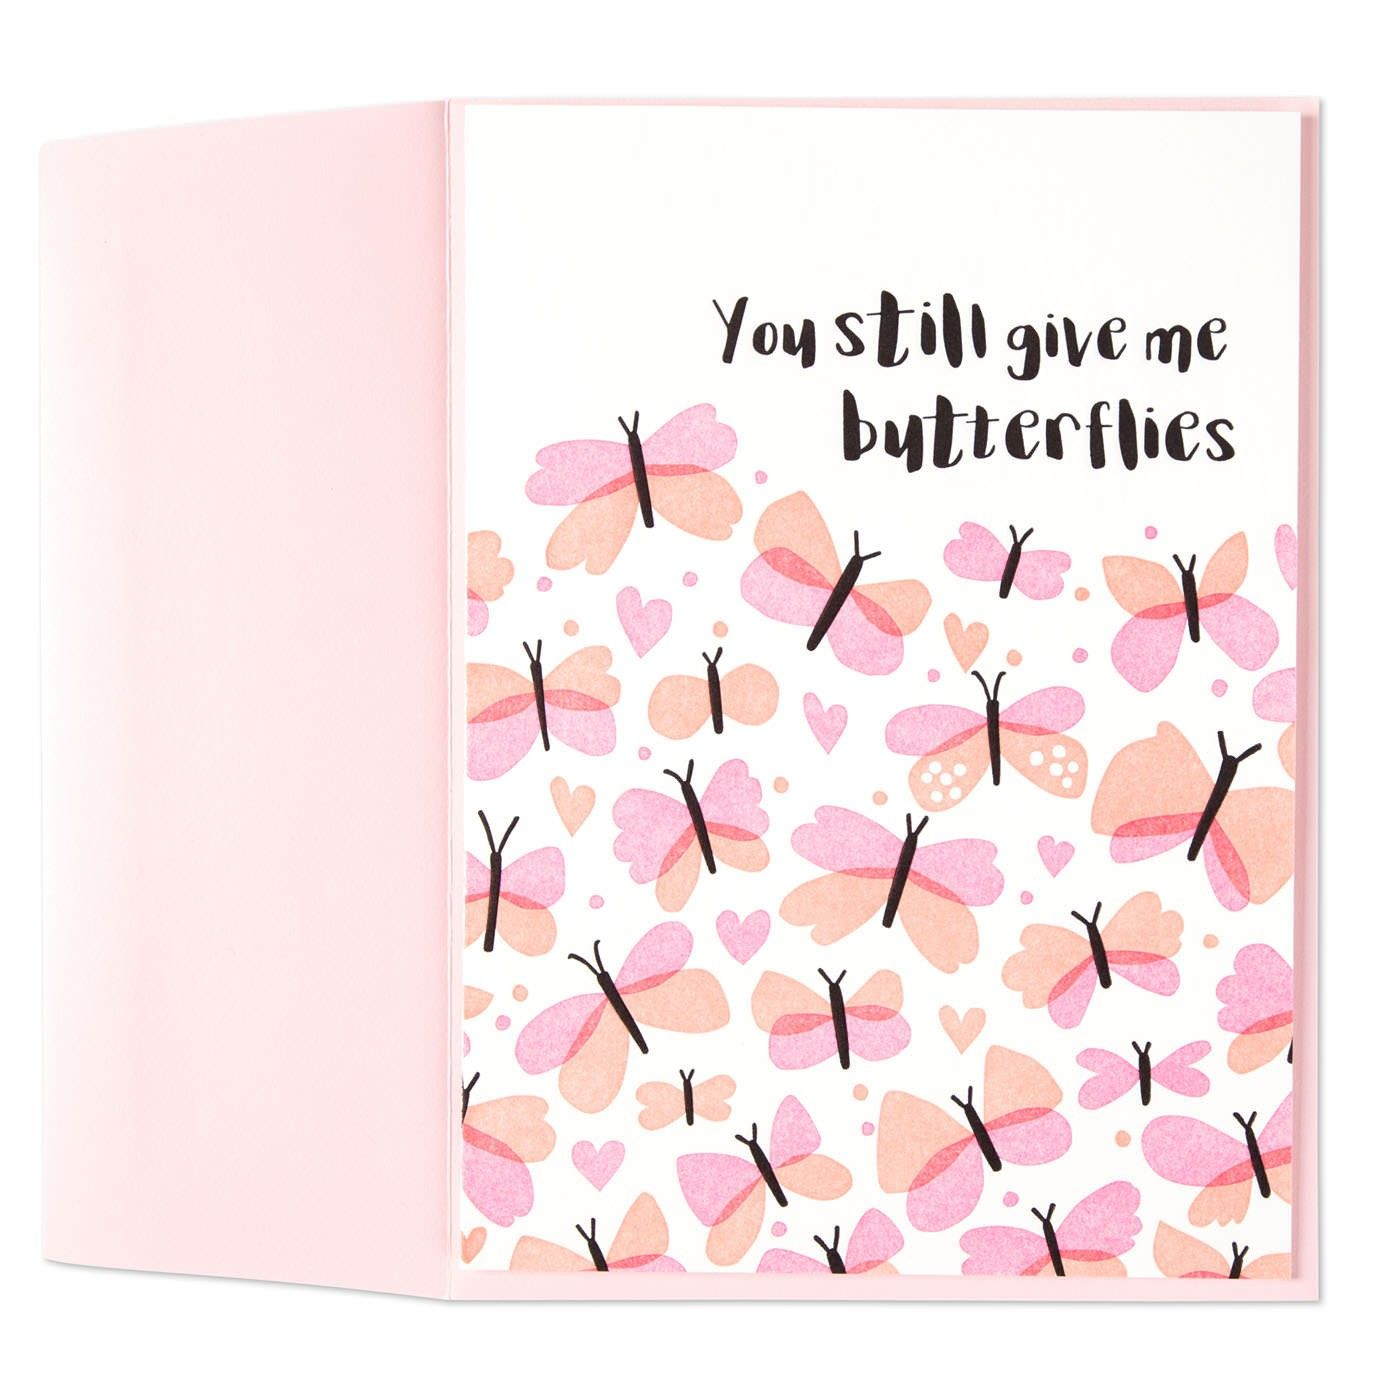 Give Me Butterflies Anniversary Card Anniversary Cards Give It To Me Love Cards